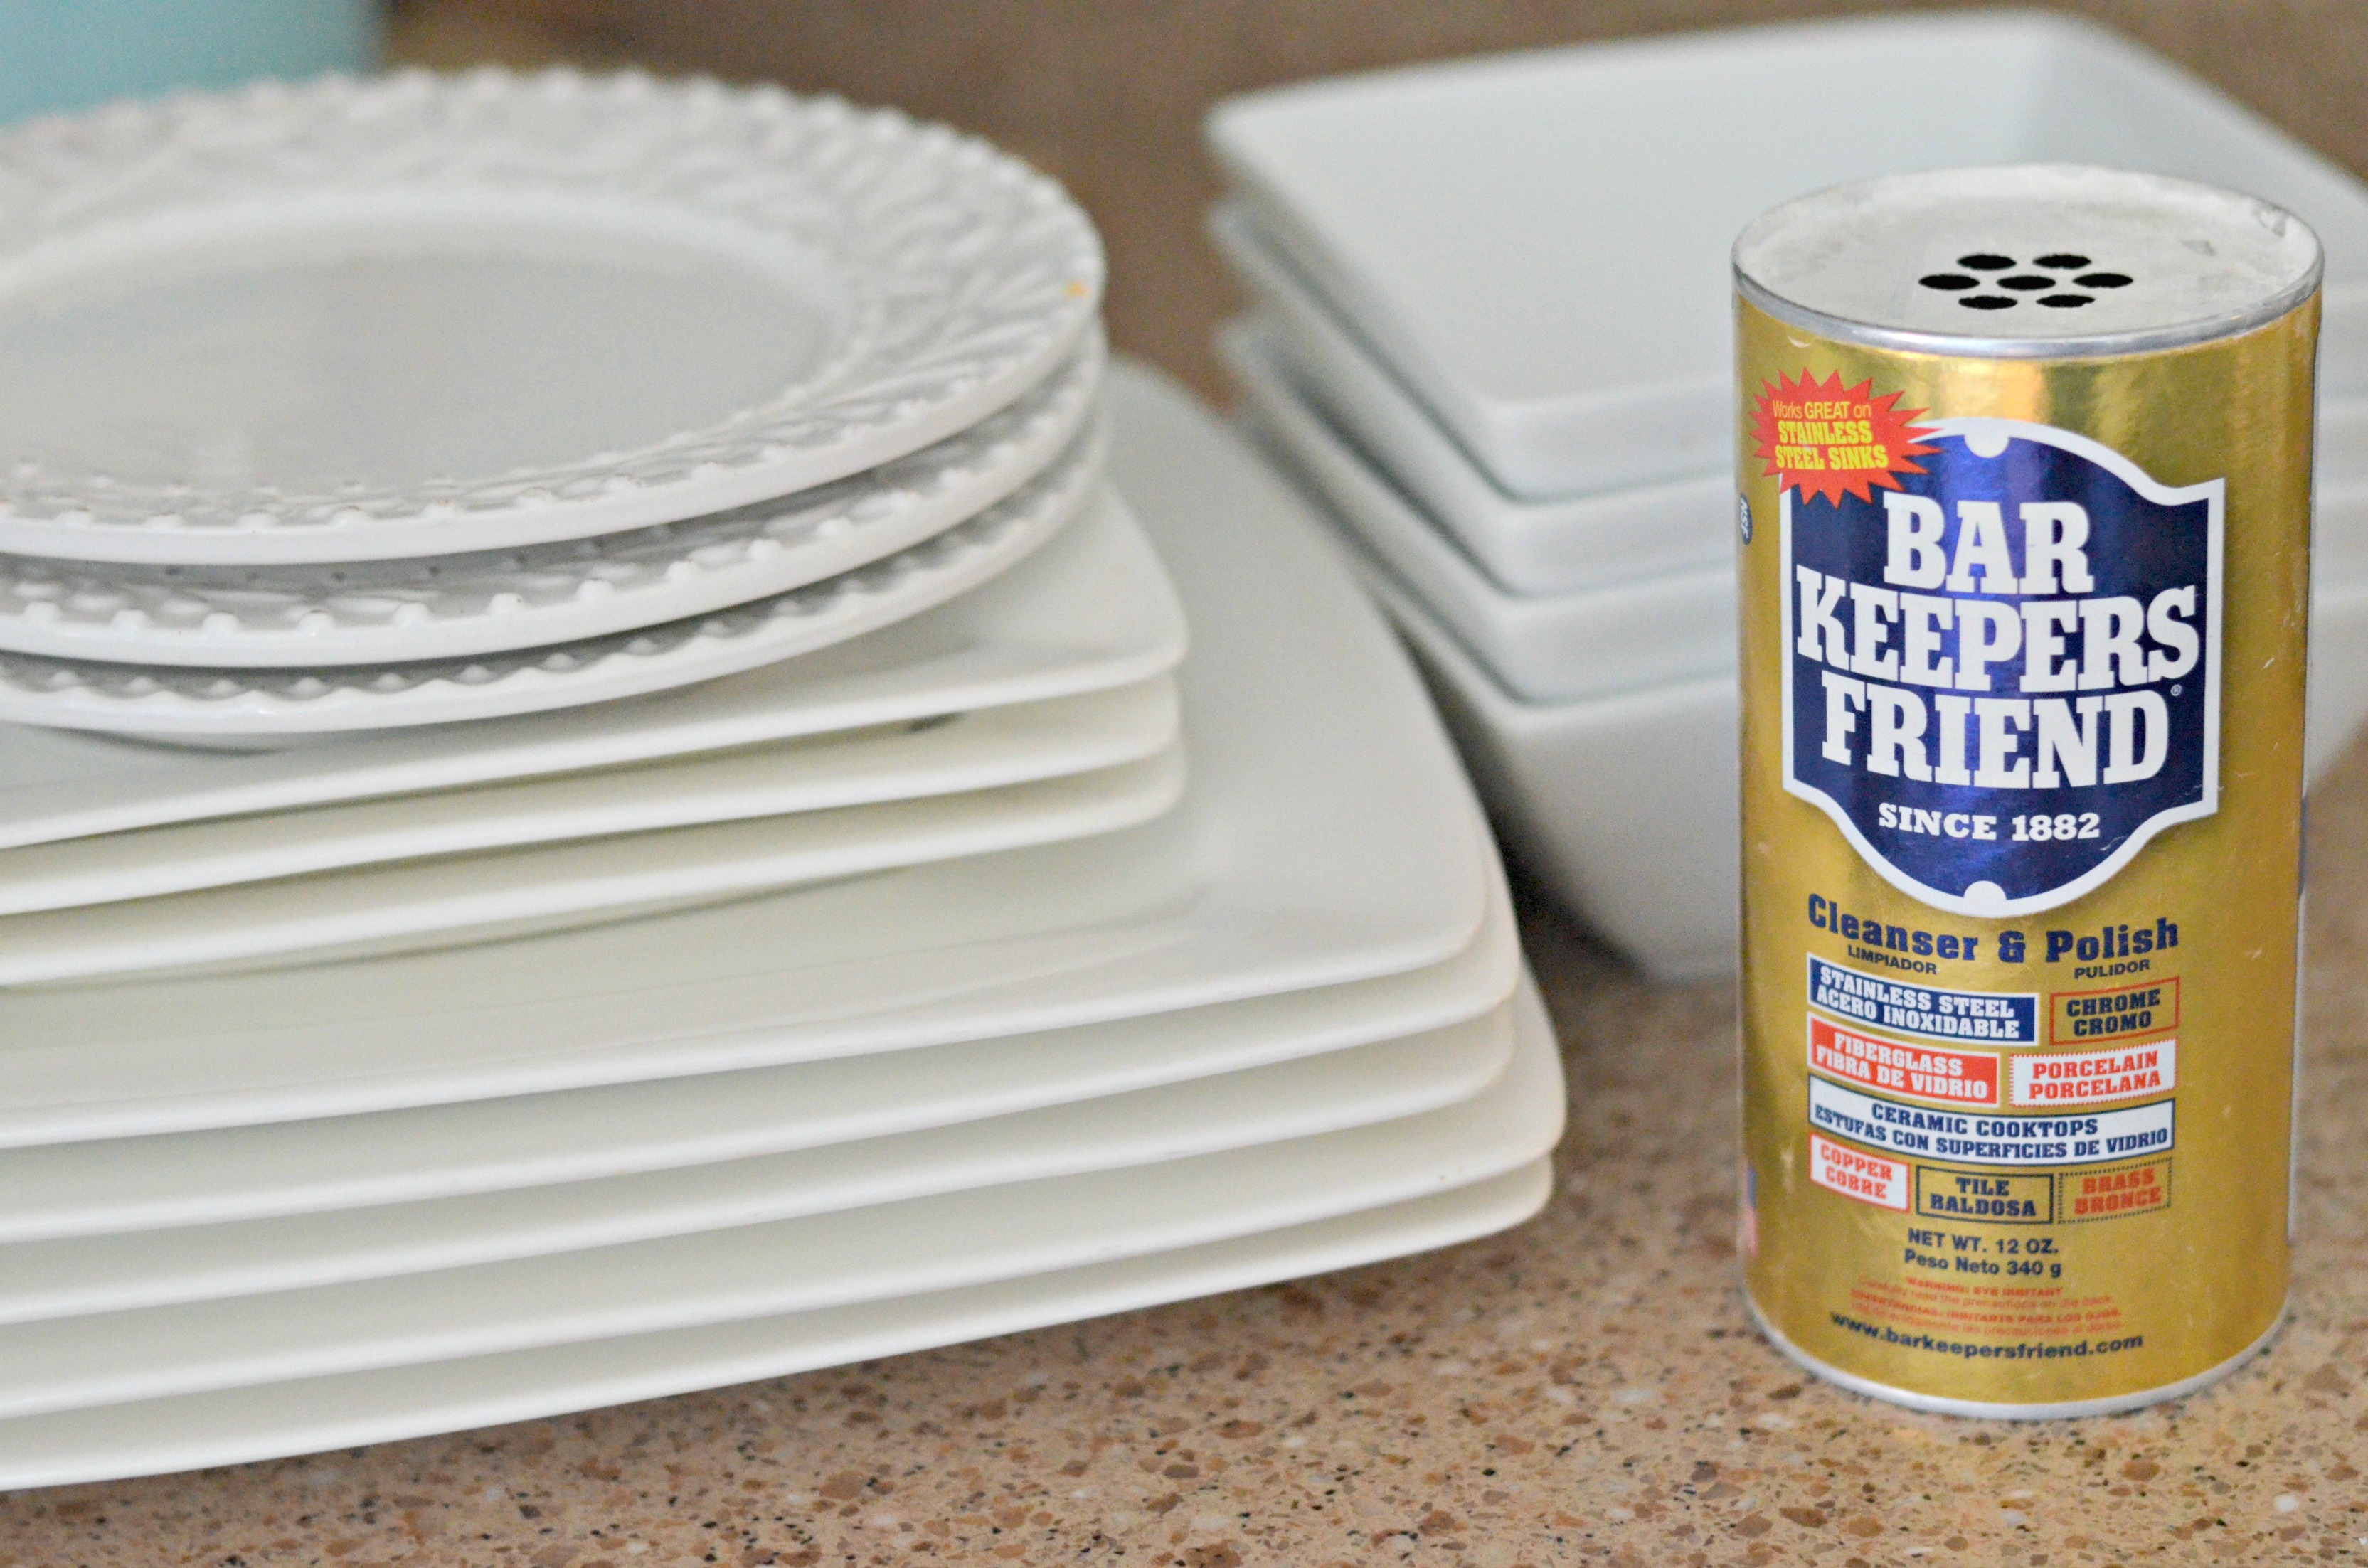 Bar Keepers Friend next to a stack of dishes